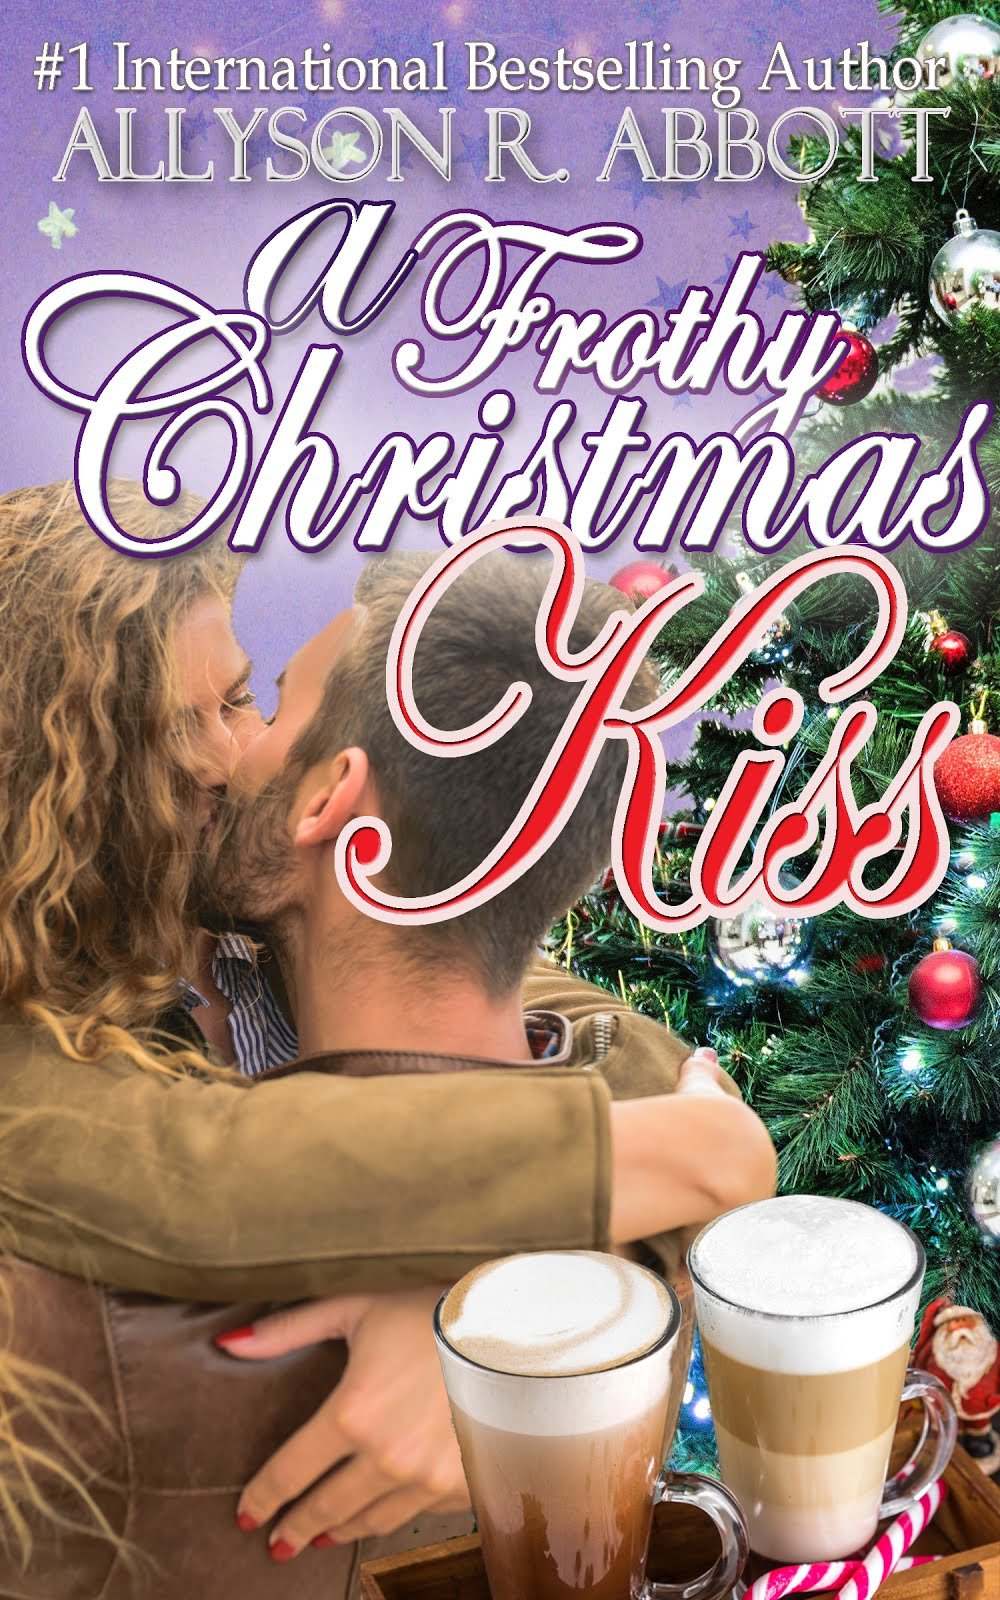 Book 4: A Frothy Christmas Kiss